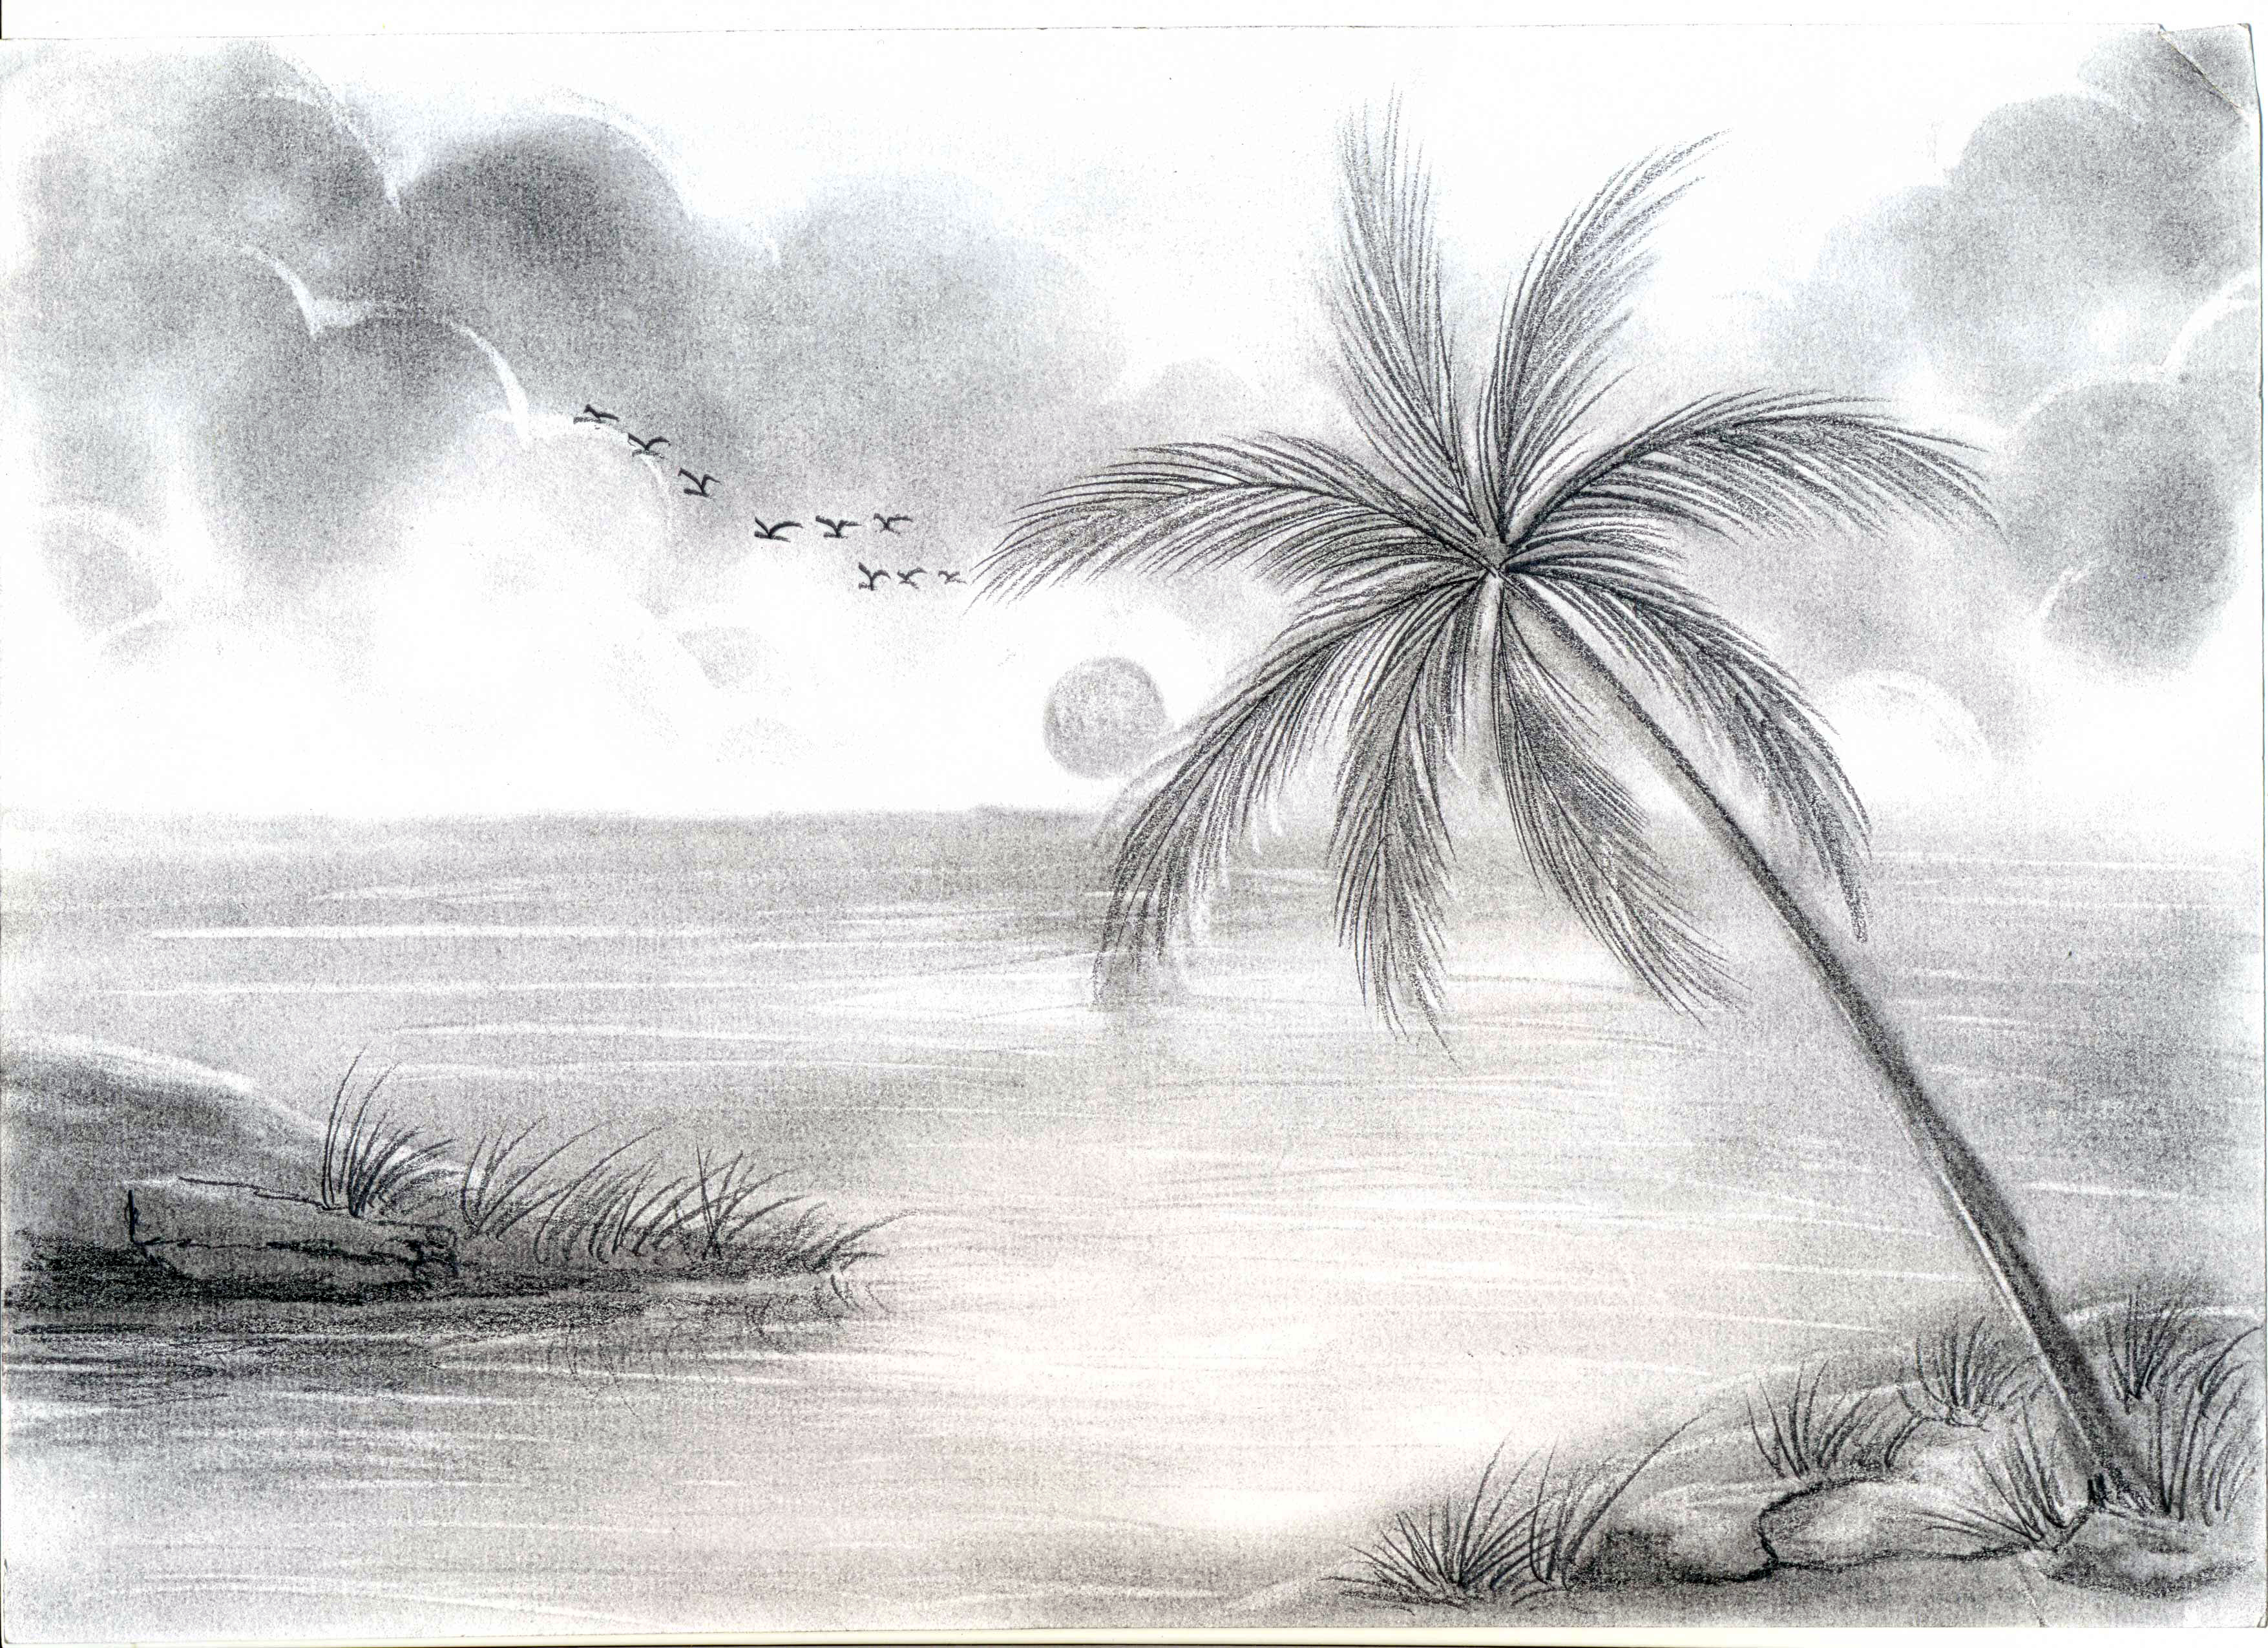 3510x2550 easy pencil sketch drawing nature easy shading drawing nature pencil sketches of nature